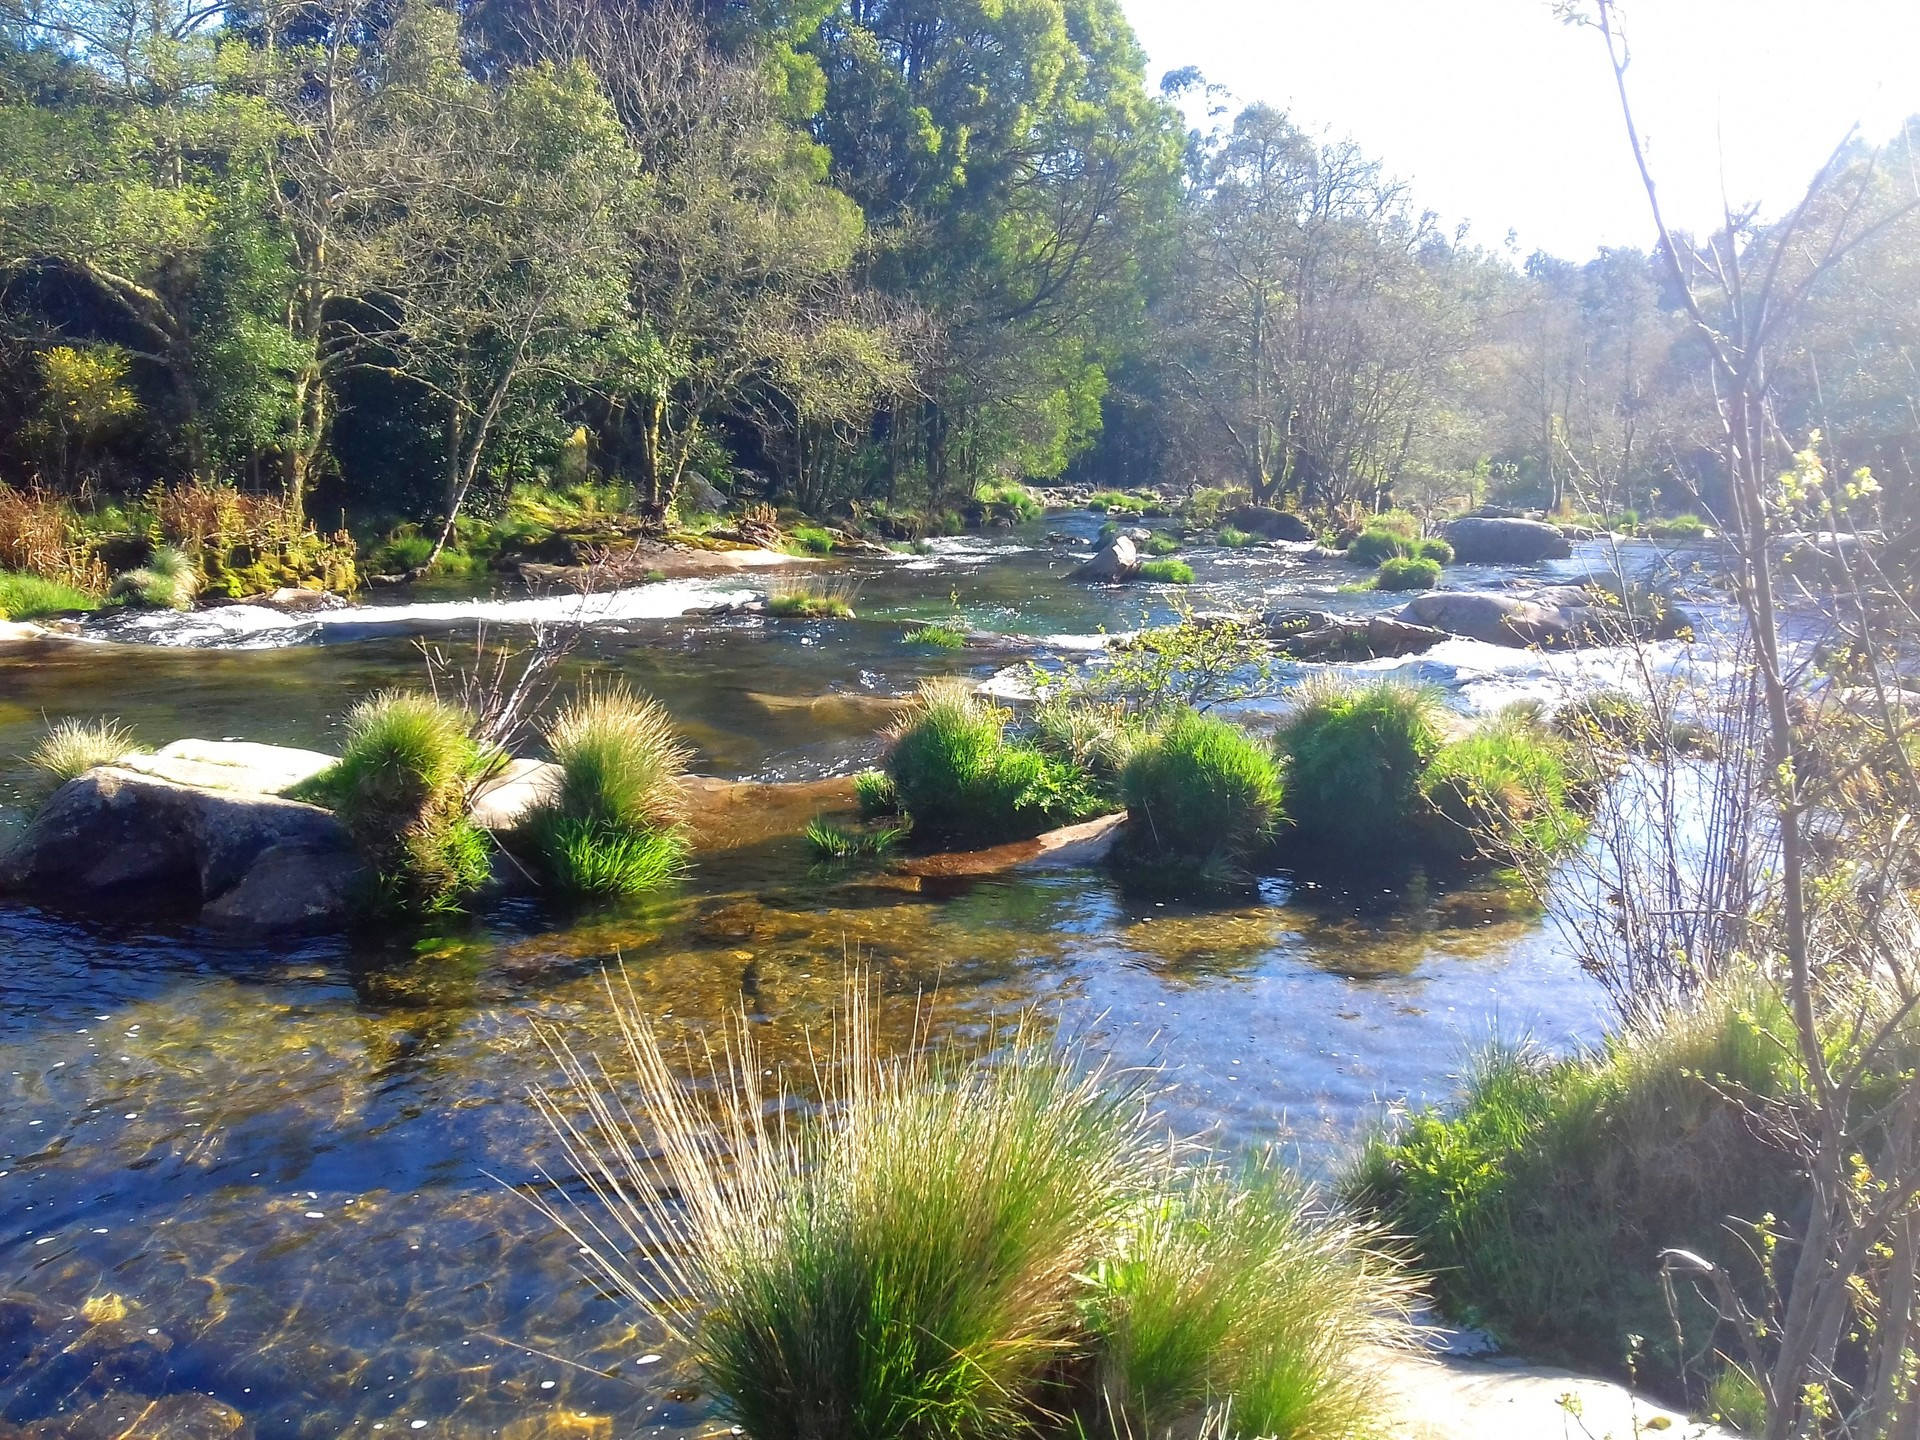 river lanscape in the woodland